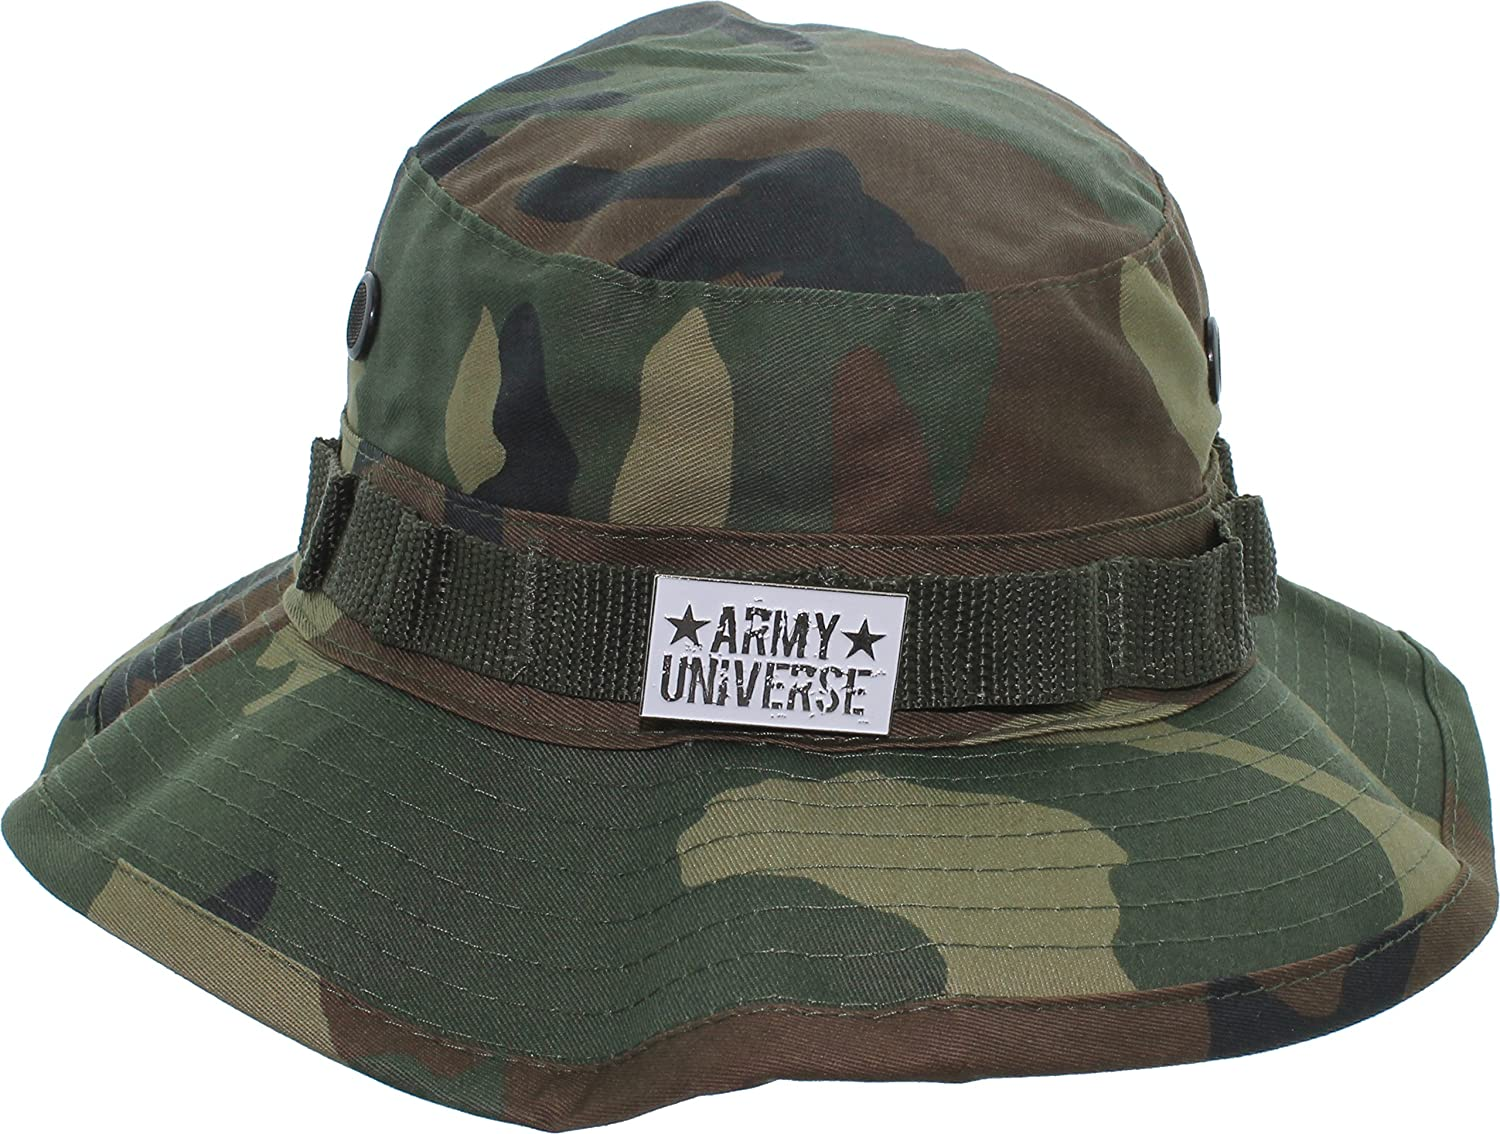 Army Universe Tactical Boonie Hat Military Camo Bucket Wide Brim Sun ... 1f4a89d900d